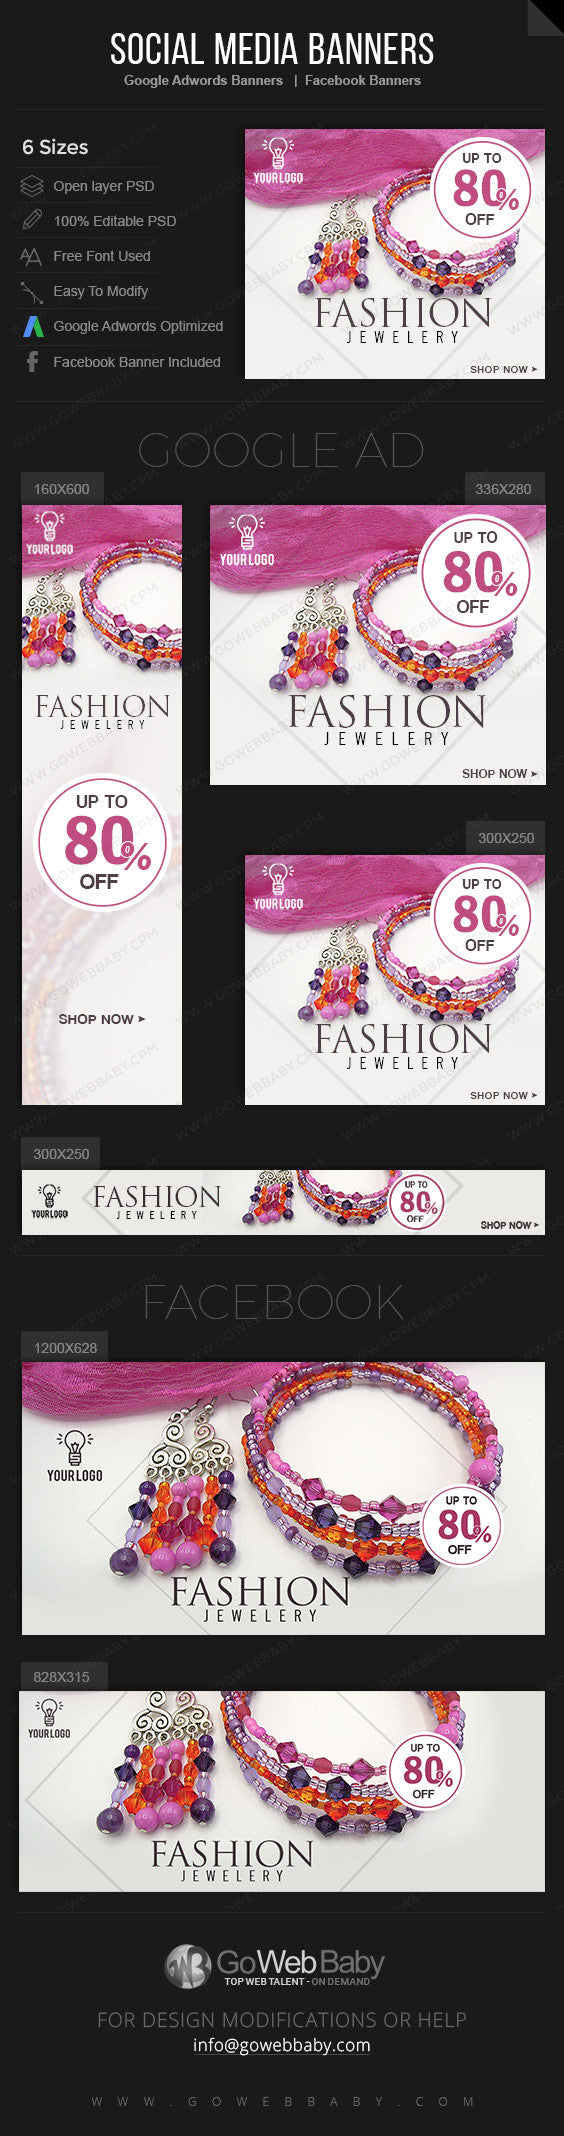 Google Adwords Display Banner with Facebook banners Jewelry For Website Marketing - GoWebBaby.Com